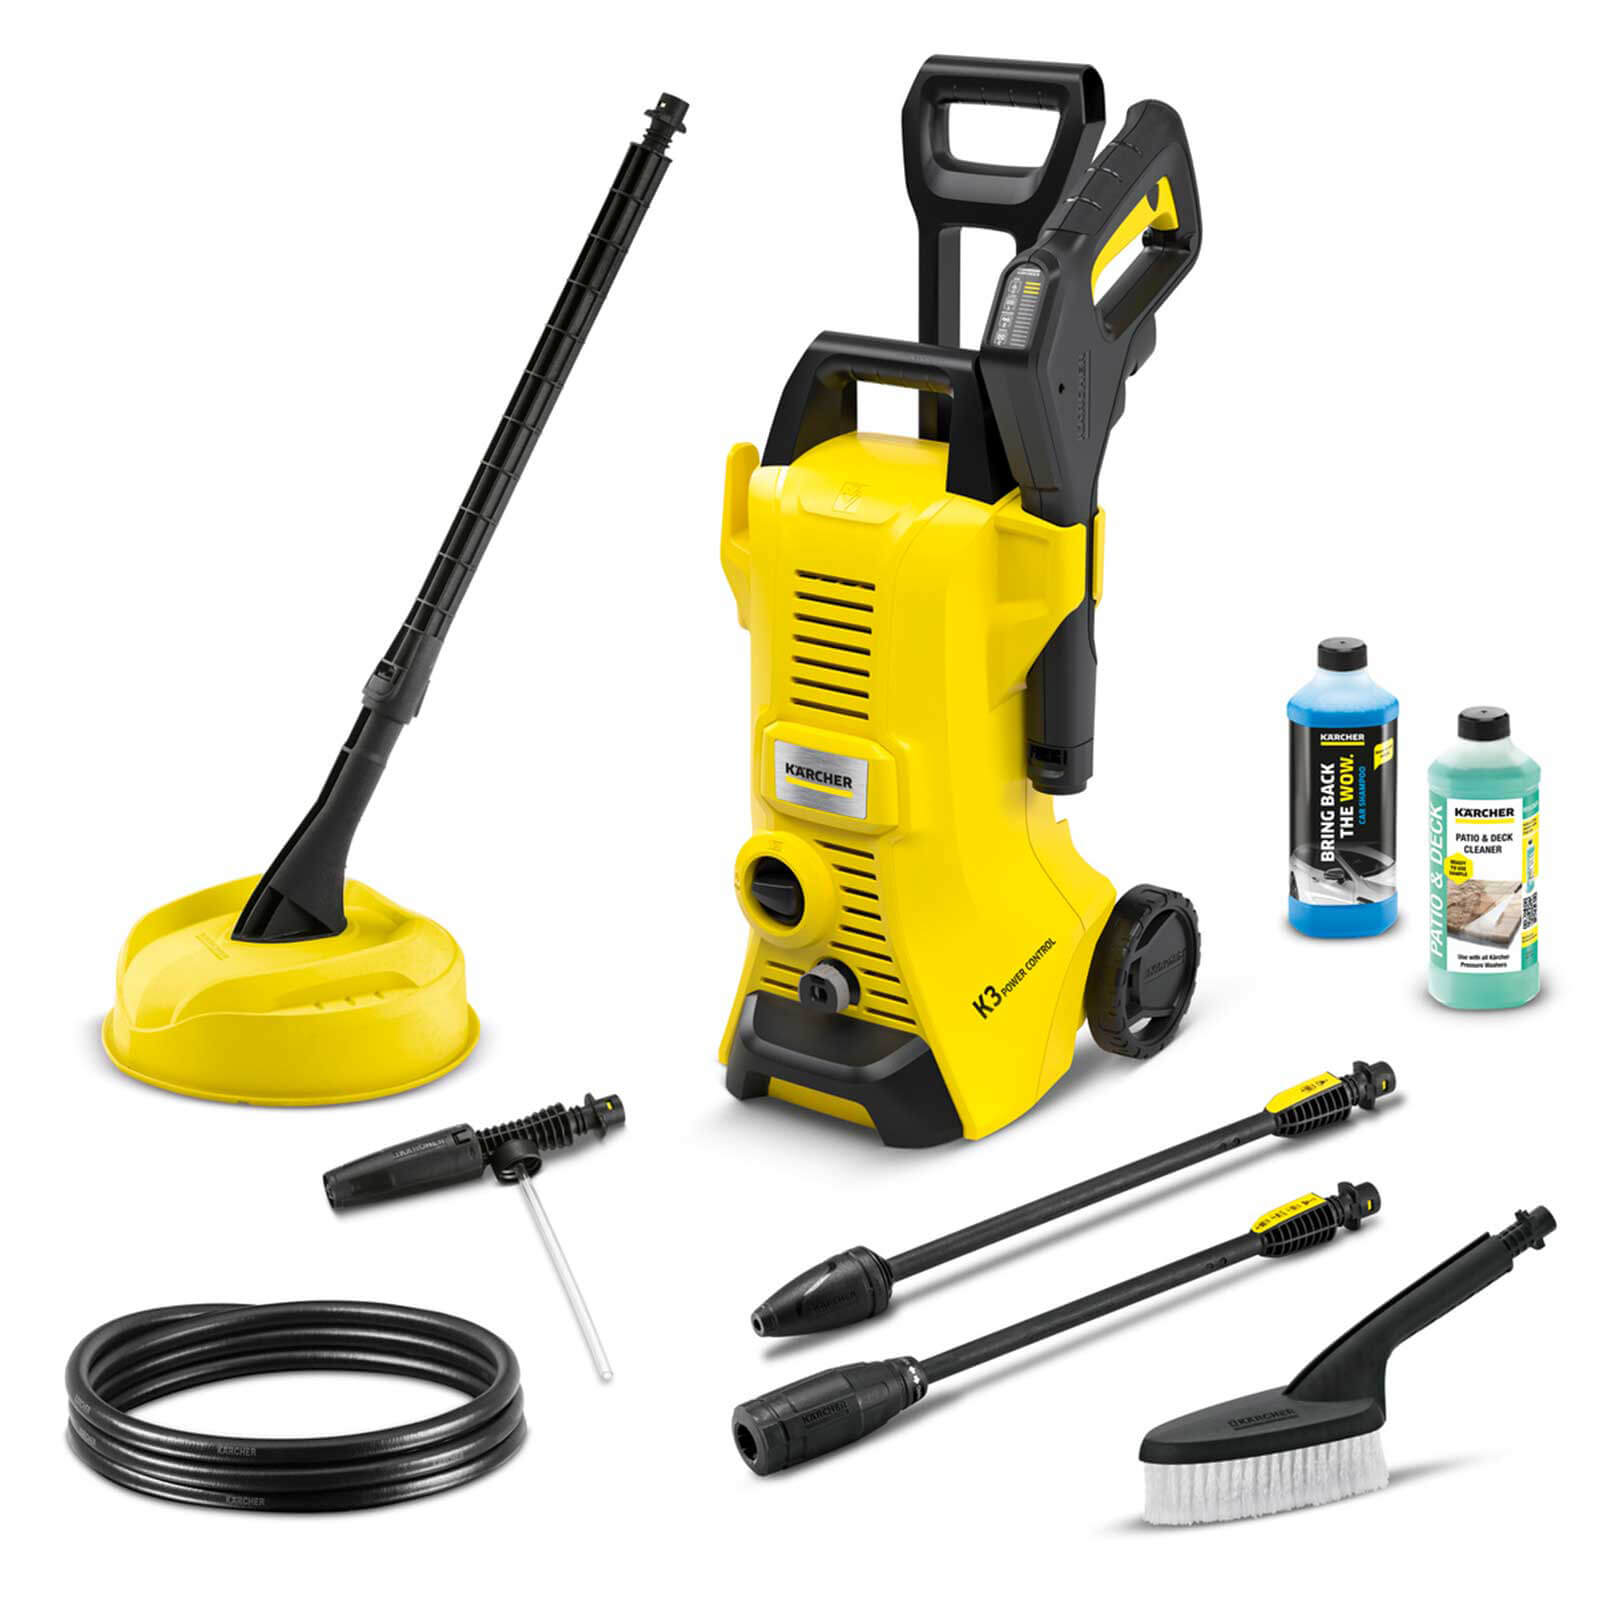 Karcher K3 Power Control Car and Home Pressure Washer 120 Bar